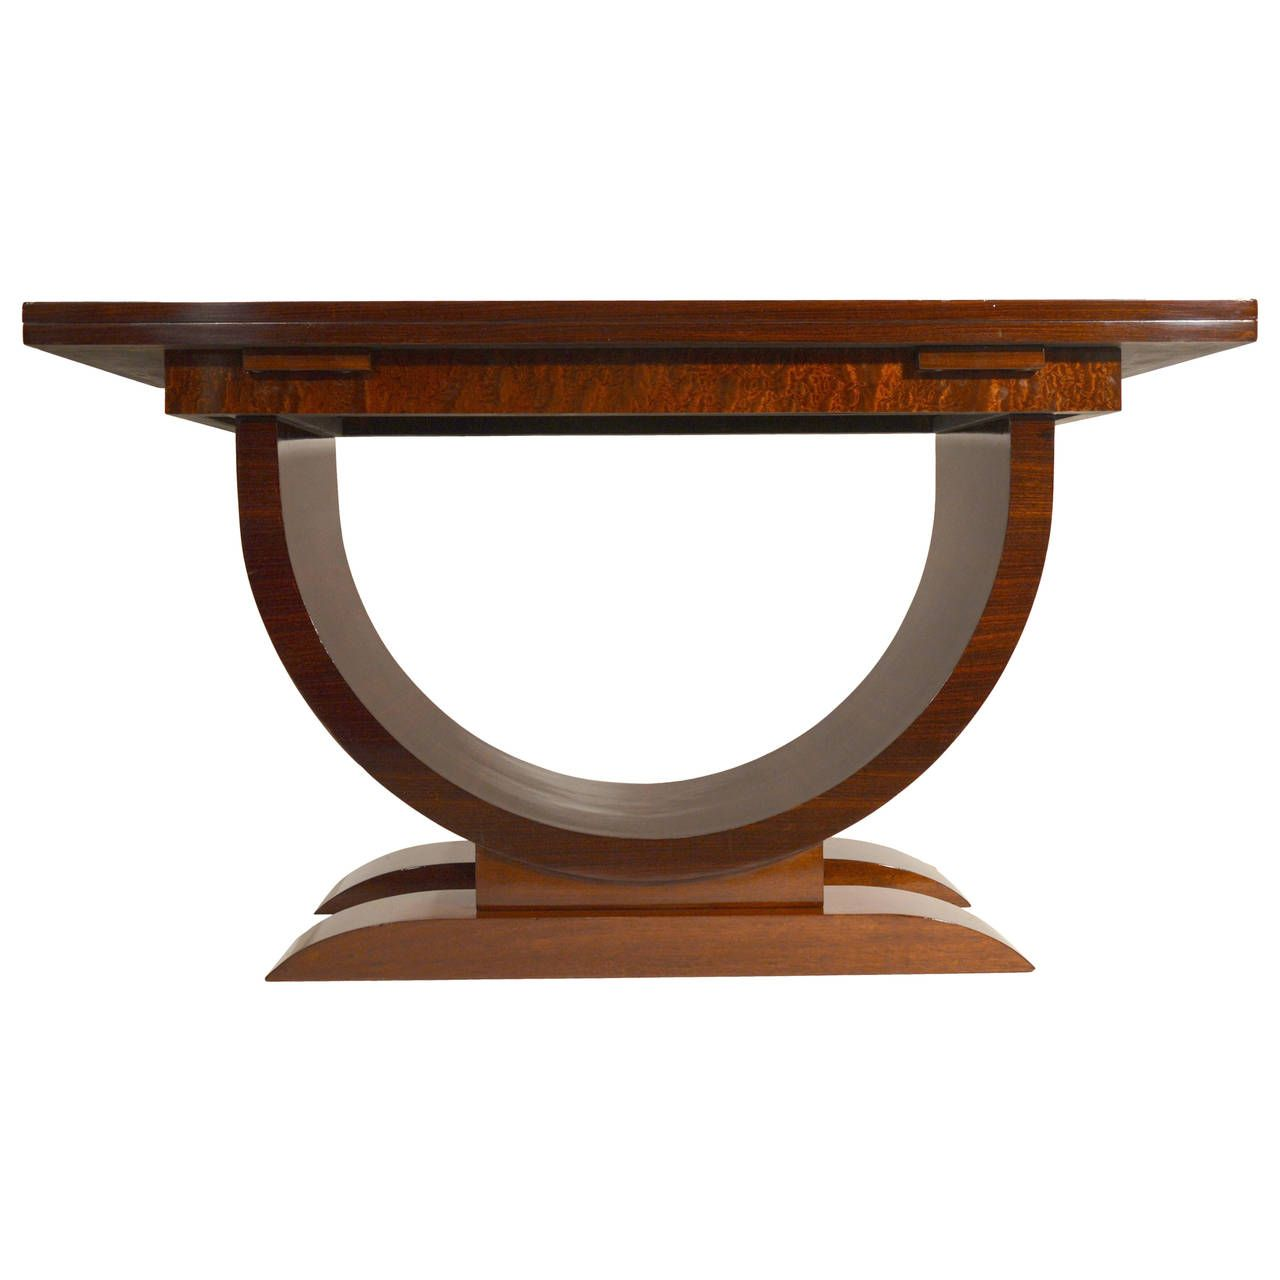 Art Deco Folding Side Table in Rosewood and Mahogany | From a unique collection of antique and modern console tables at https://www.1stdibs.com/furniture/tables/console-tables/